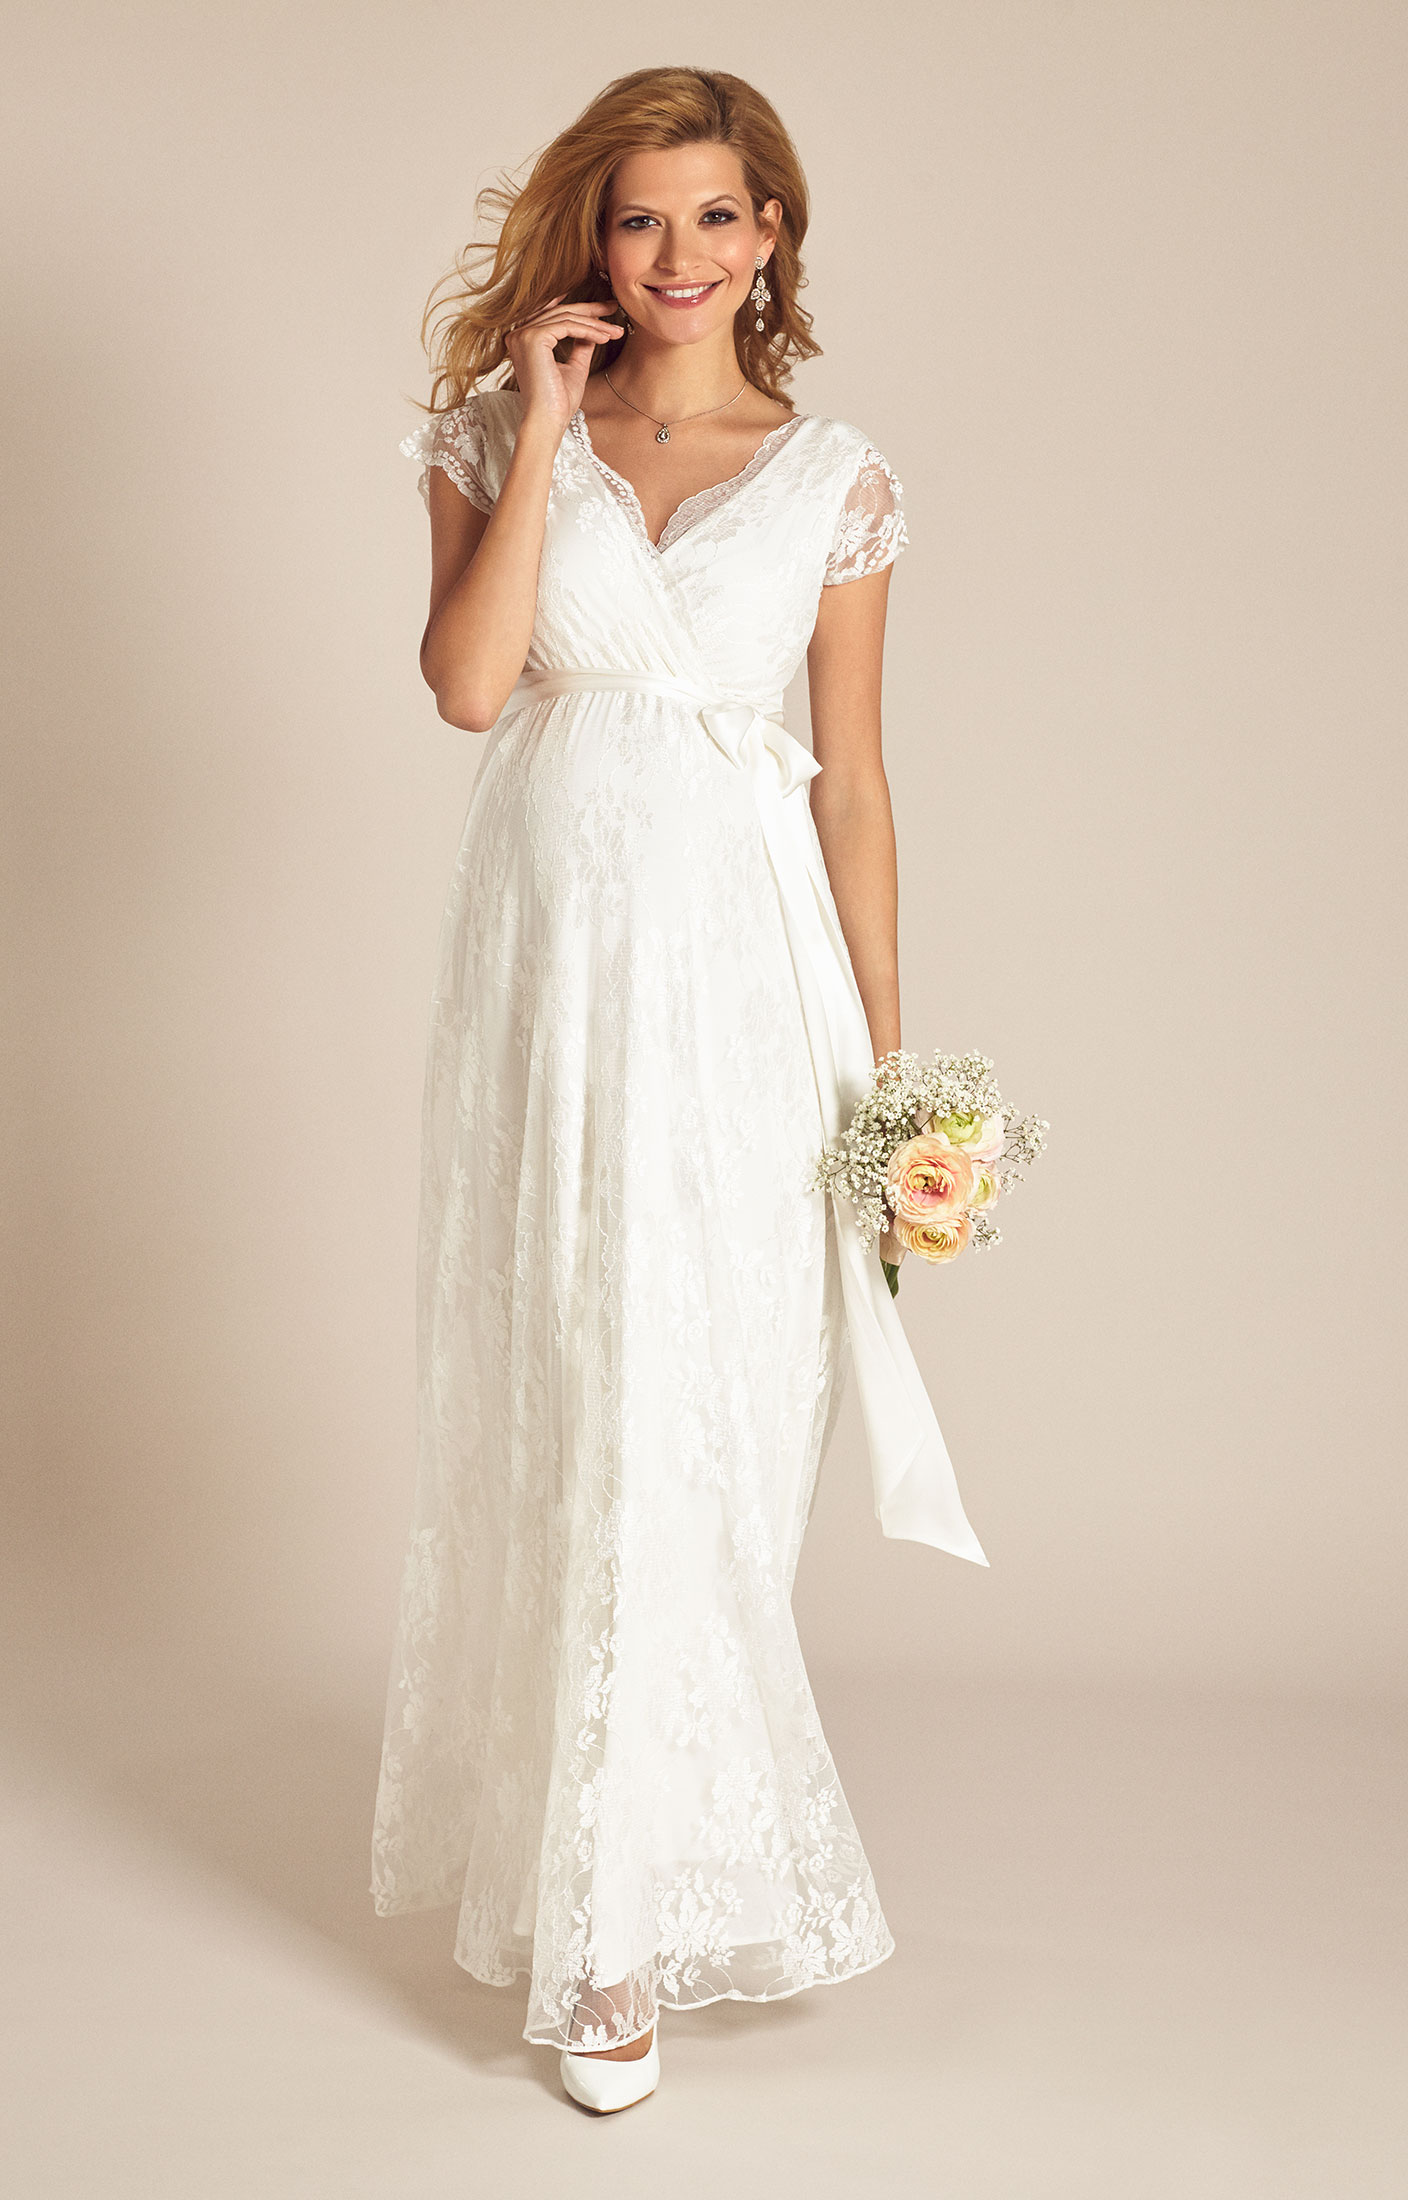 jcpenney wedding dresses bridal gowns photo - 1